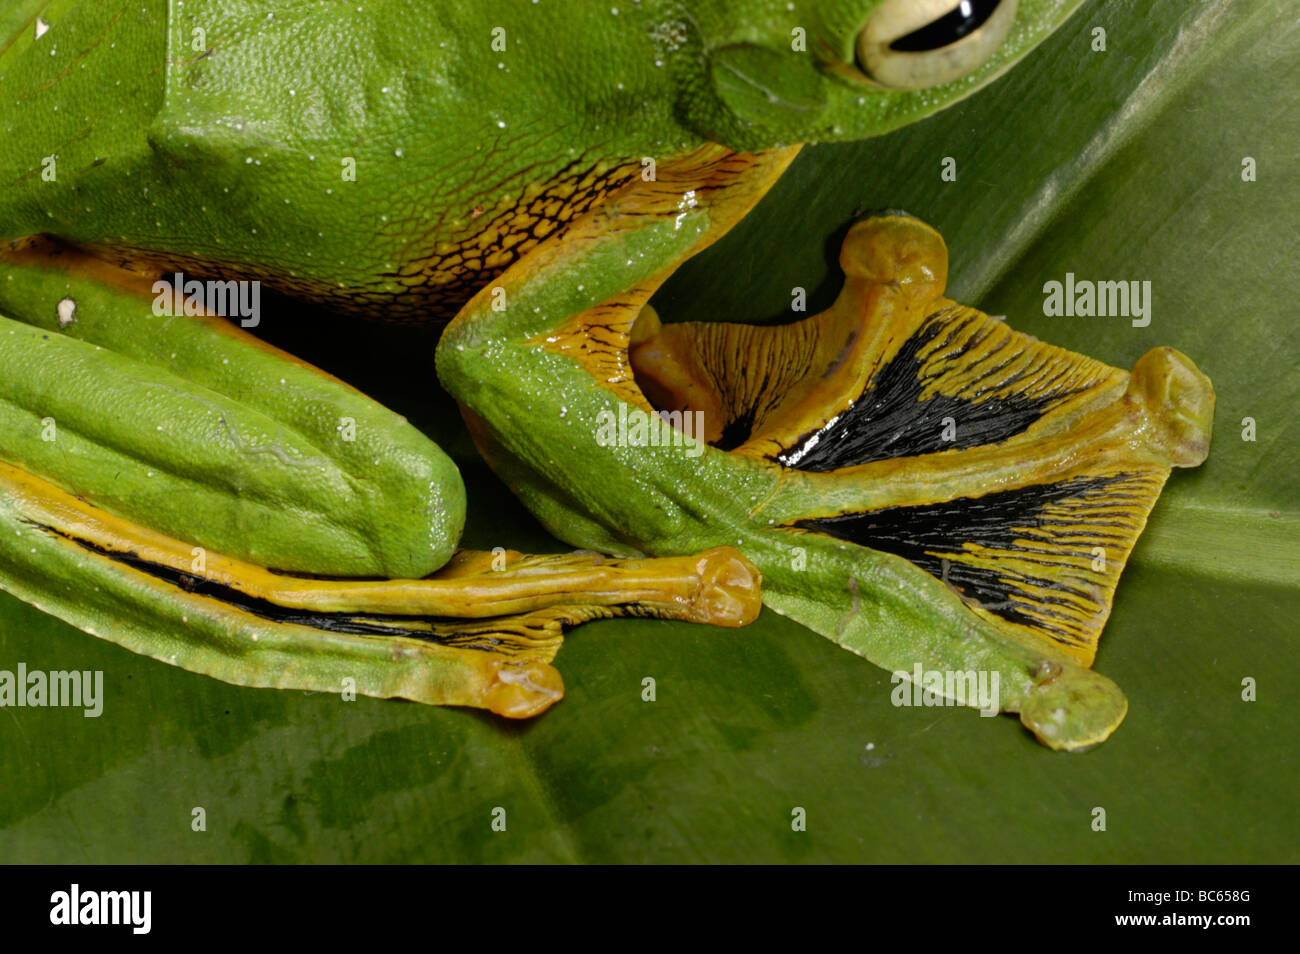 frogs with feet Toads and webbed